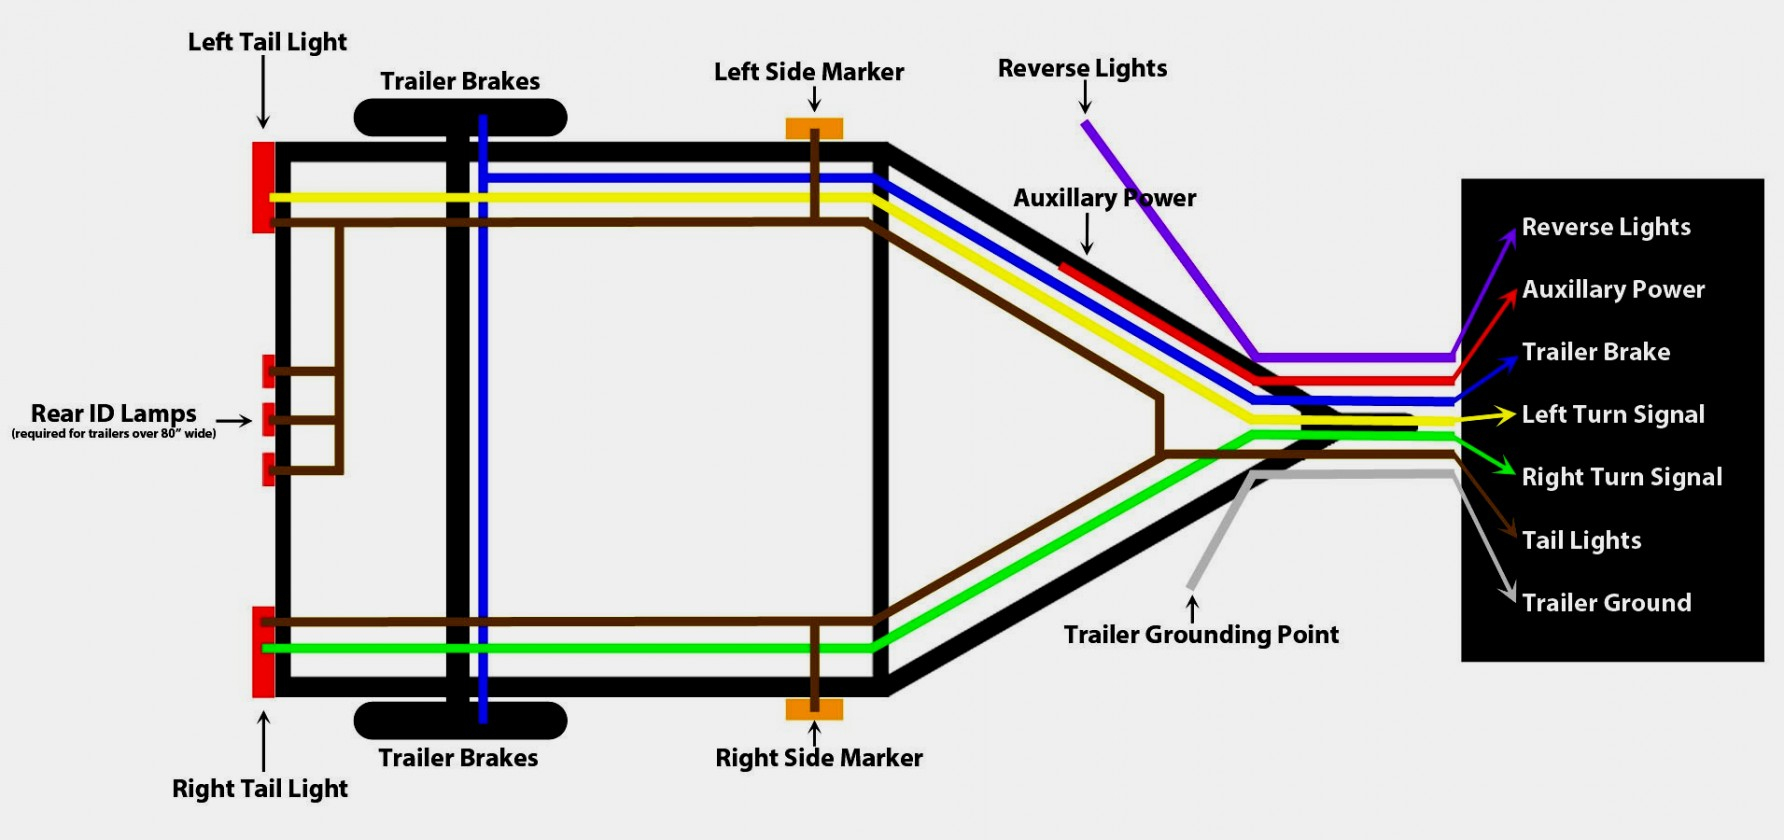 7 Prong Trailer Wiring Diagram Allove Me - Electricalcircuitdiagram.club - 7 Prong Wiring Diagram